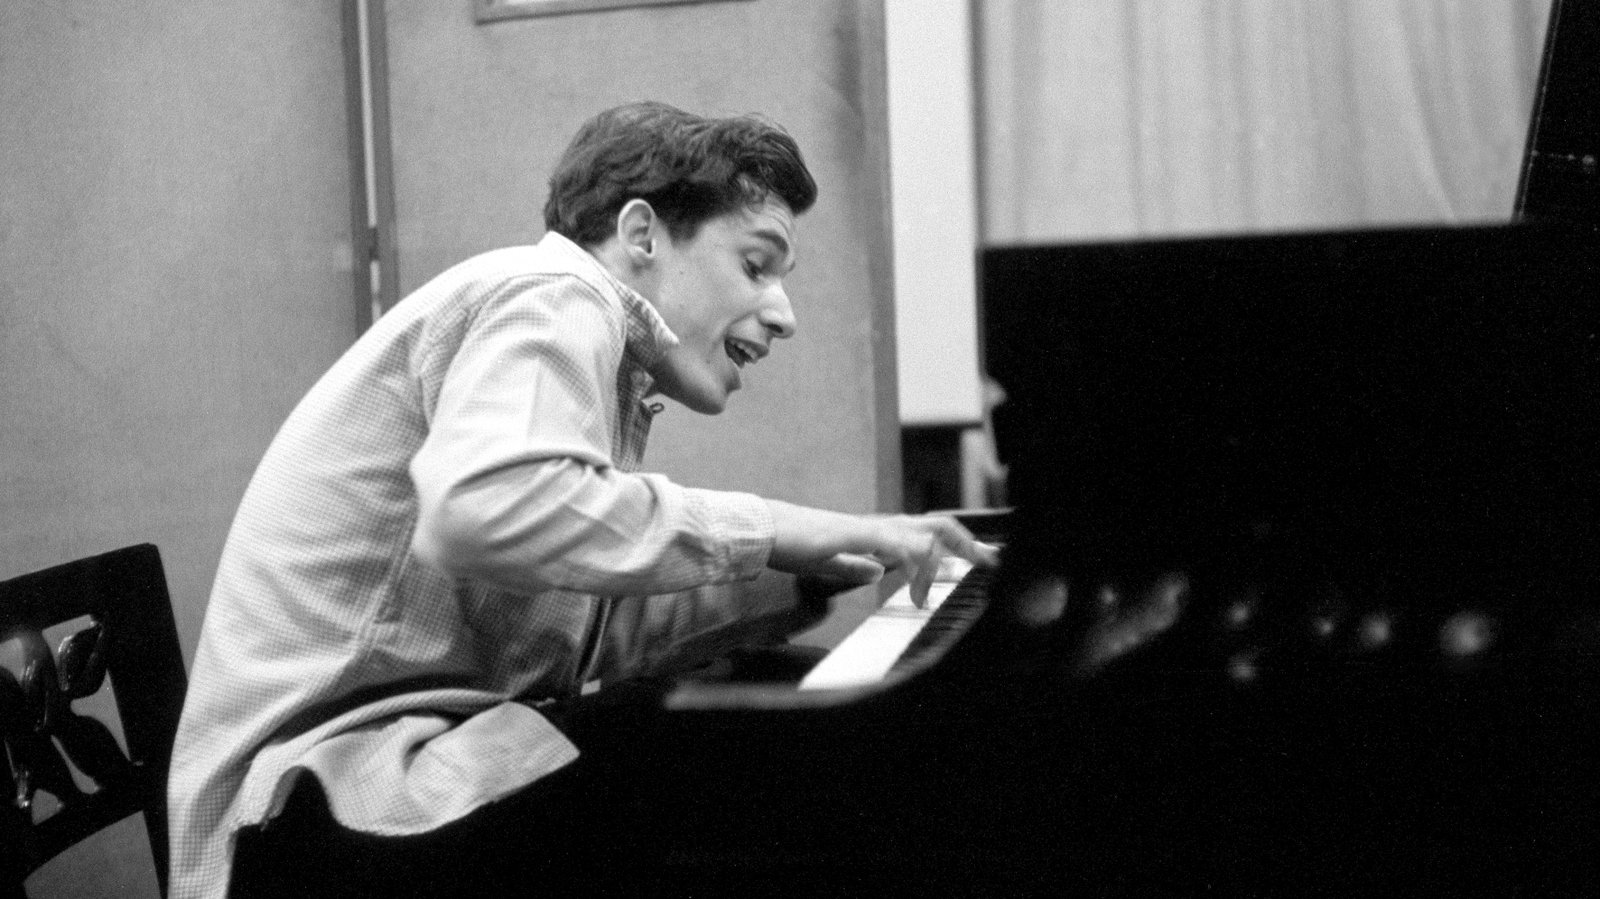 5 Hours of Glenn Gould Outtakes Why Listen and Find Out